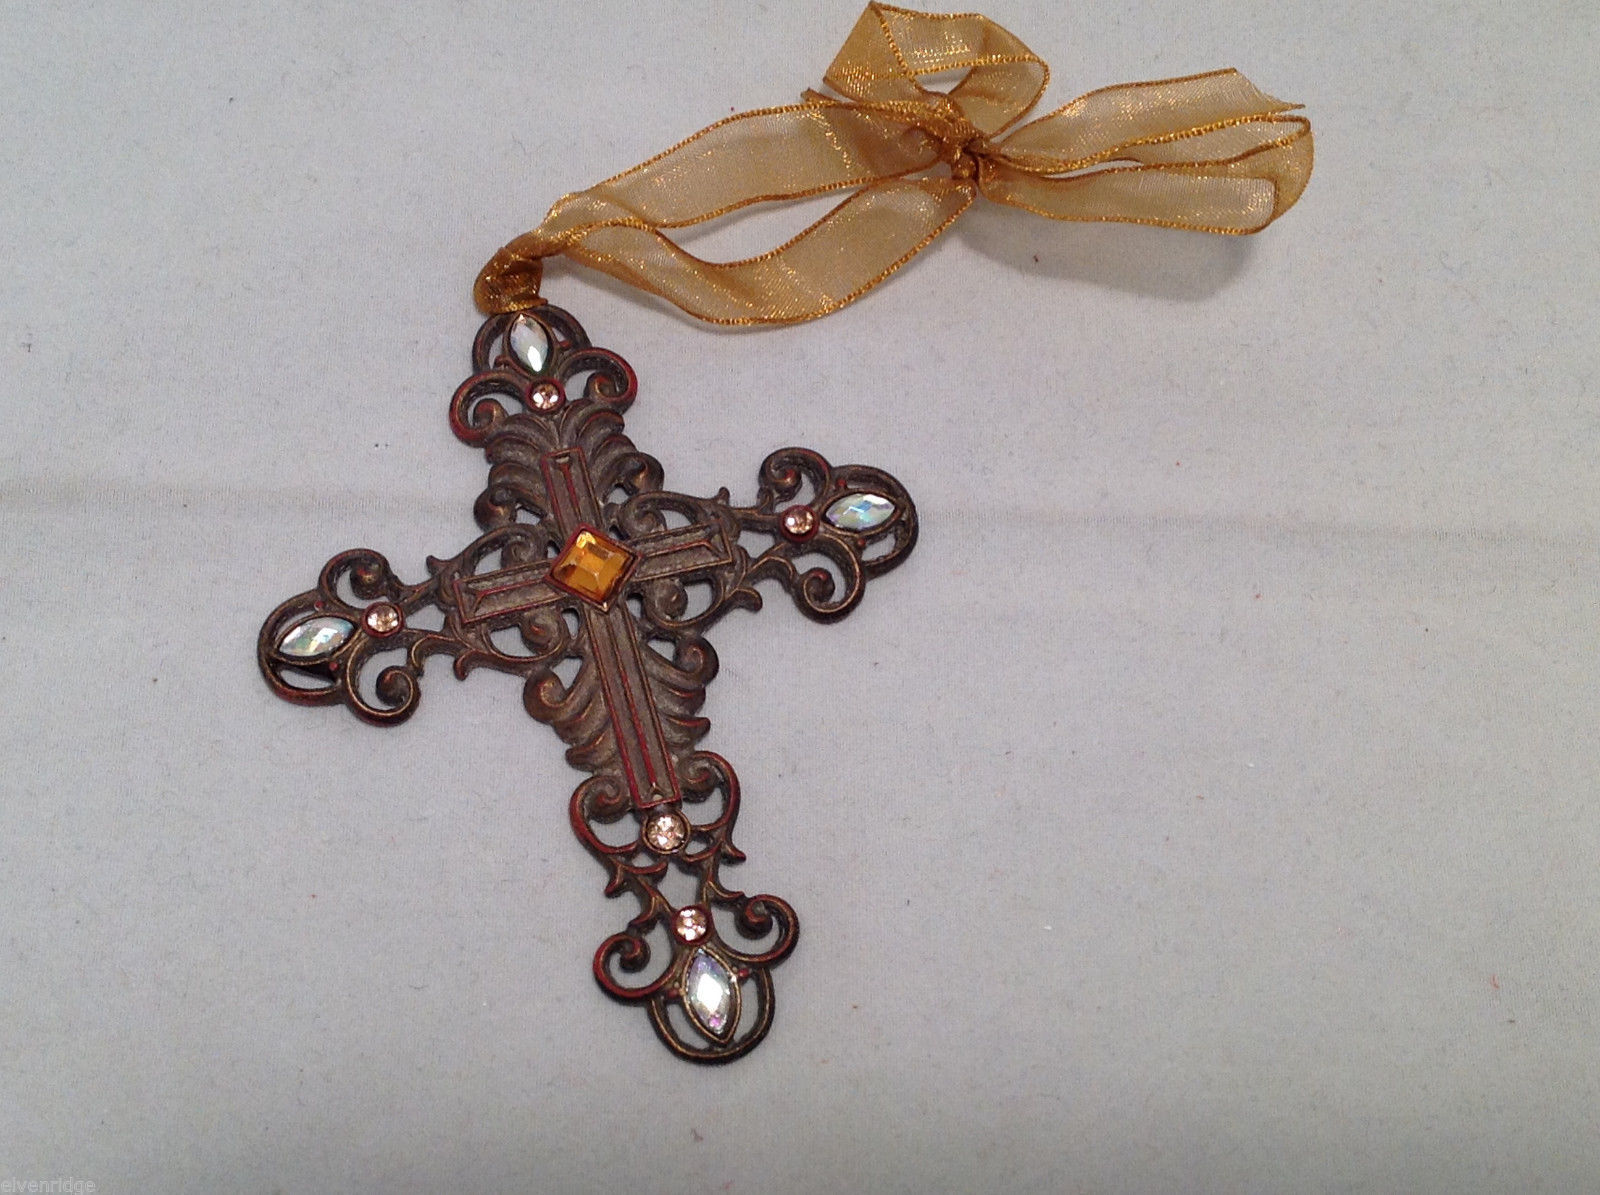 Crucifix Ornament Orange & White Faux Stones in Filigree Cross w/ Gold Ribbon